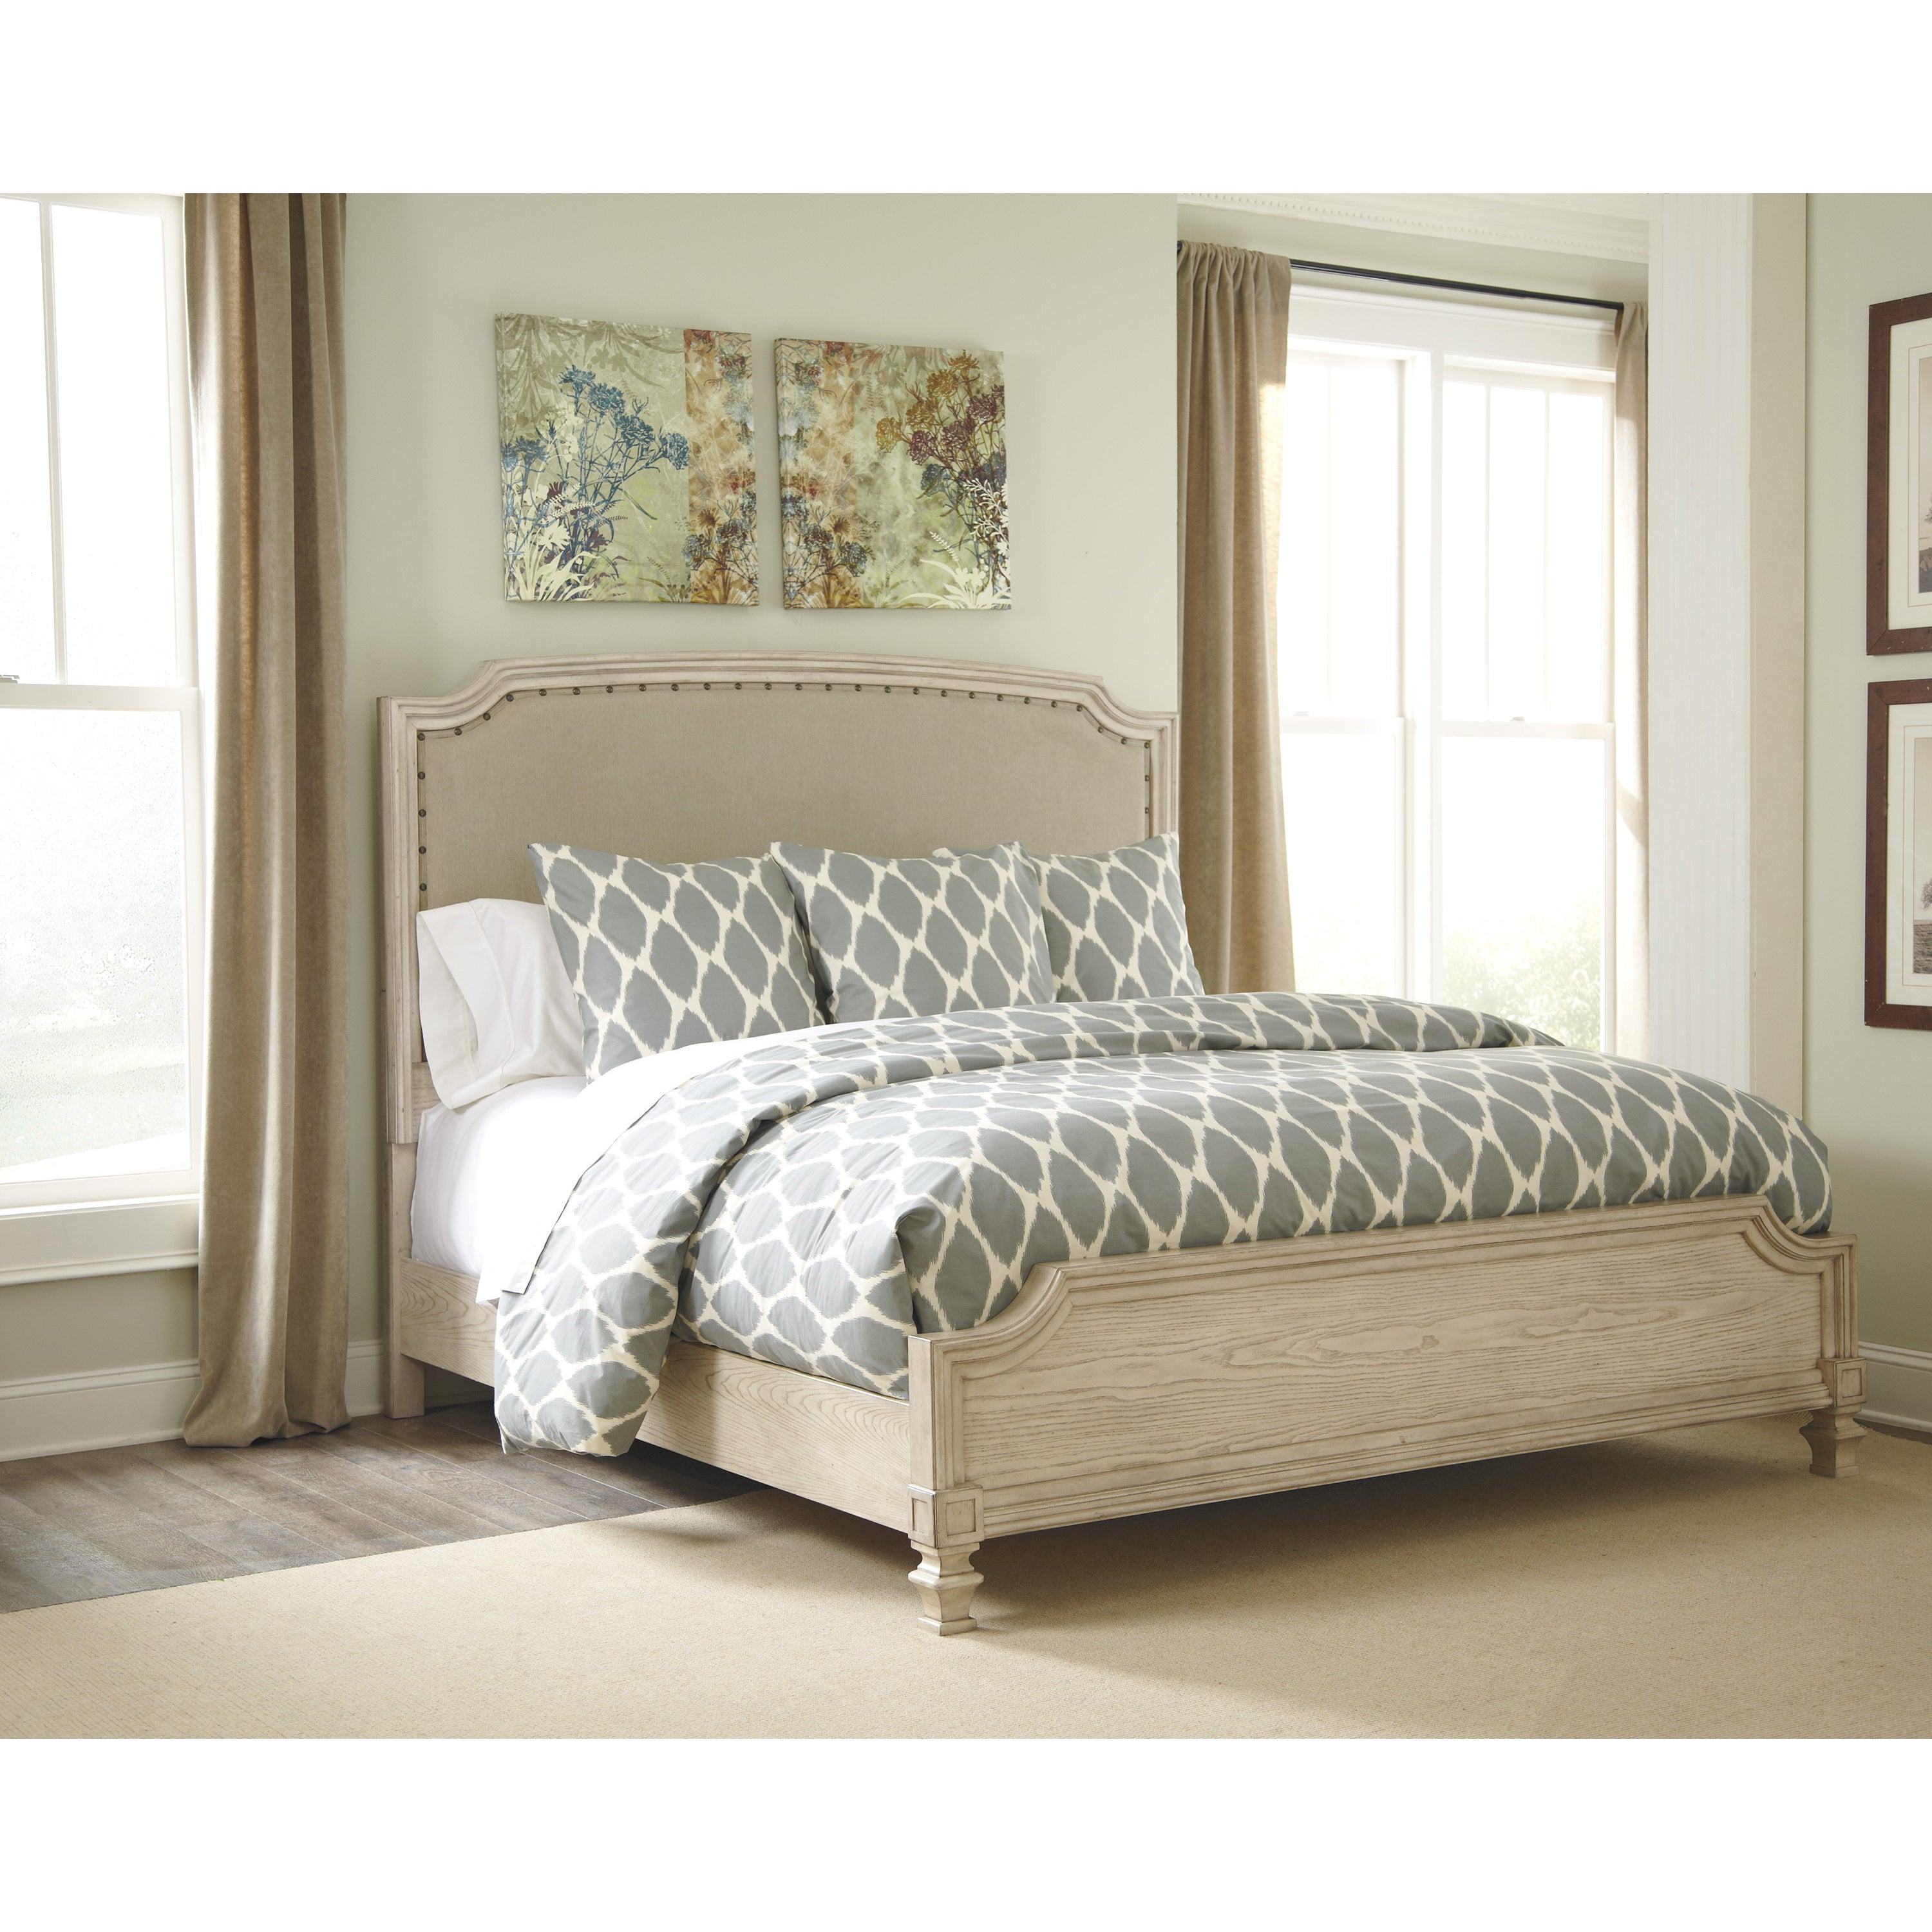 Signature Designs By Ashley Demarlos Parchment White California King Bed Overstock 9166436